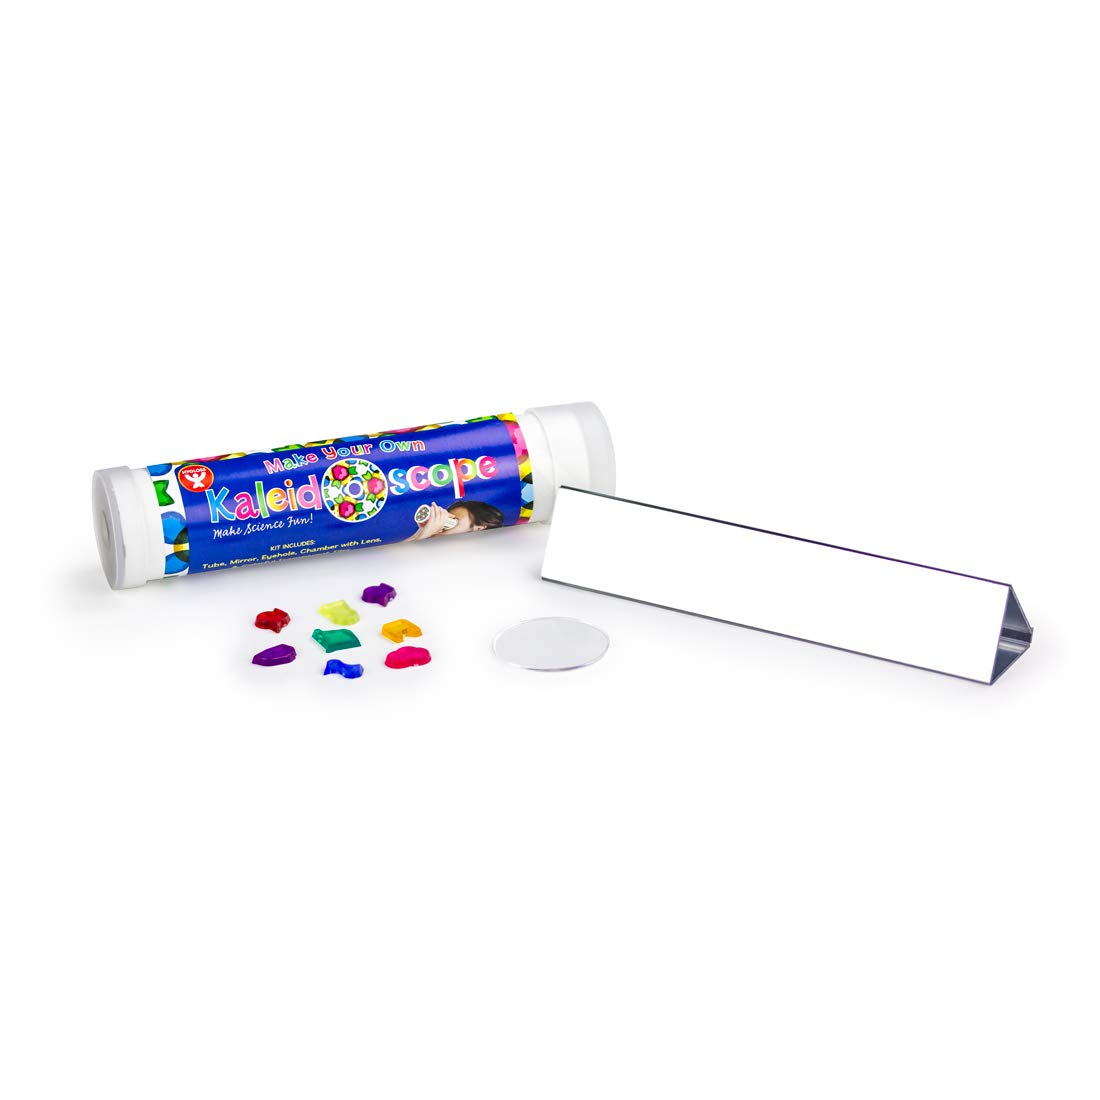 Hygloss Products Kaleidoscope Kit For Kids - Make Your Own Kaleidoscopes - 6-3/4 x 1-3/8 Inches, 12 Pack by Hygloss